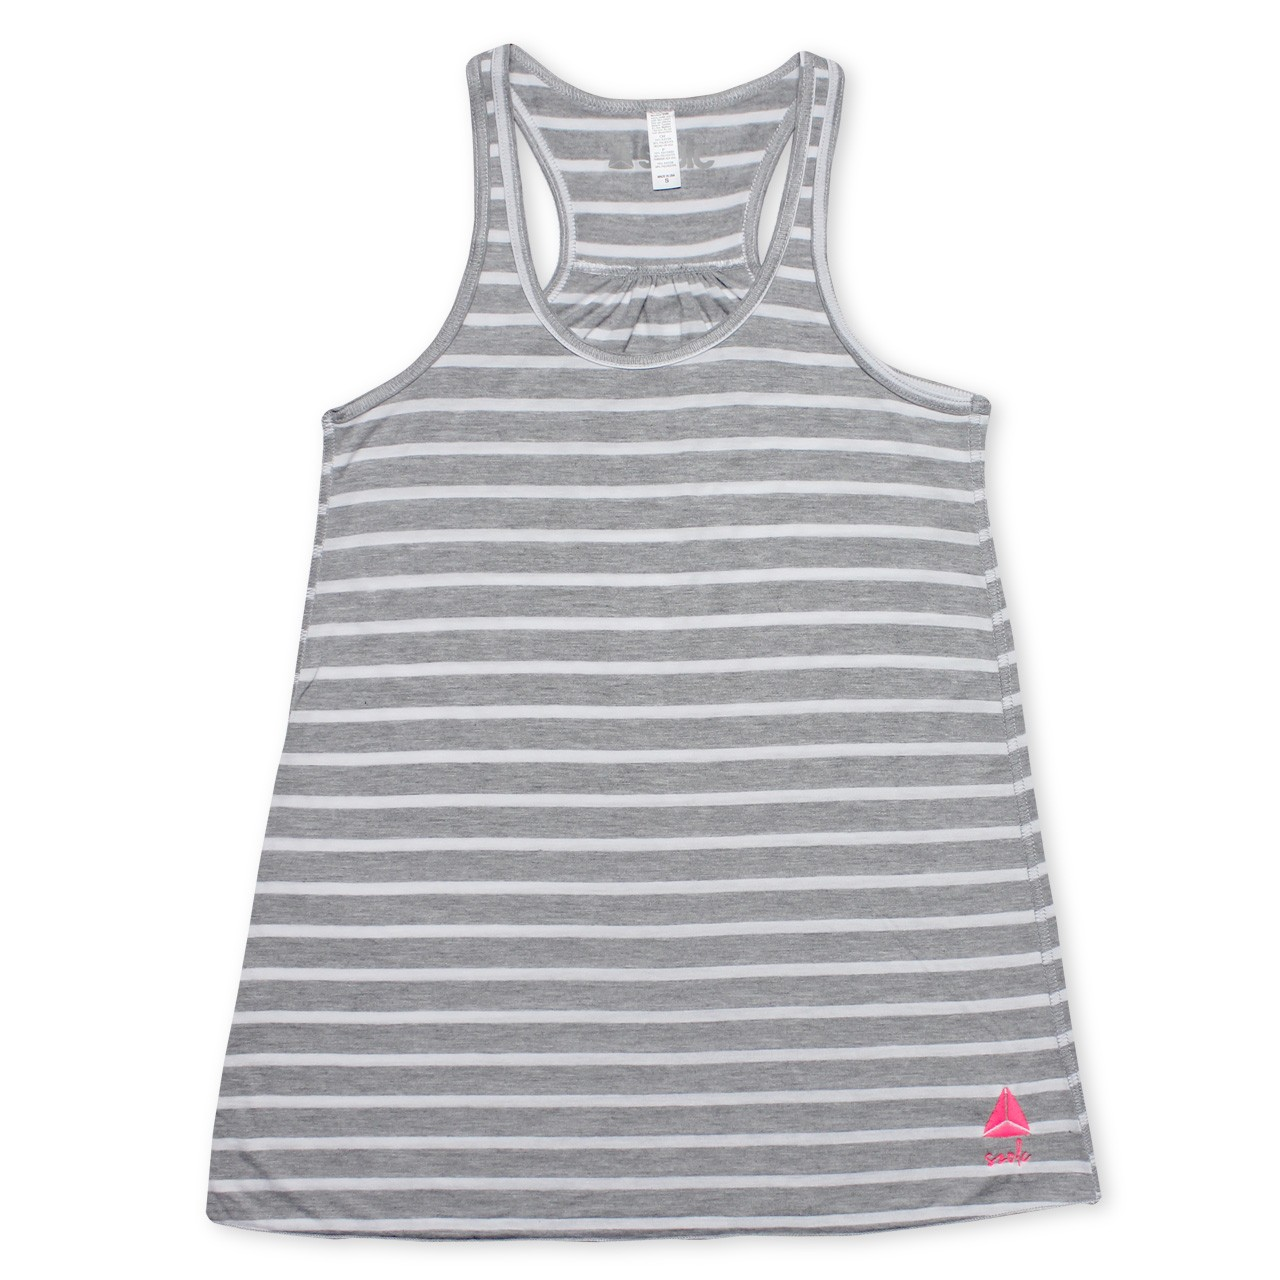 White Stripes Tank Top